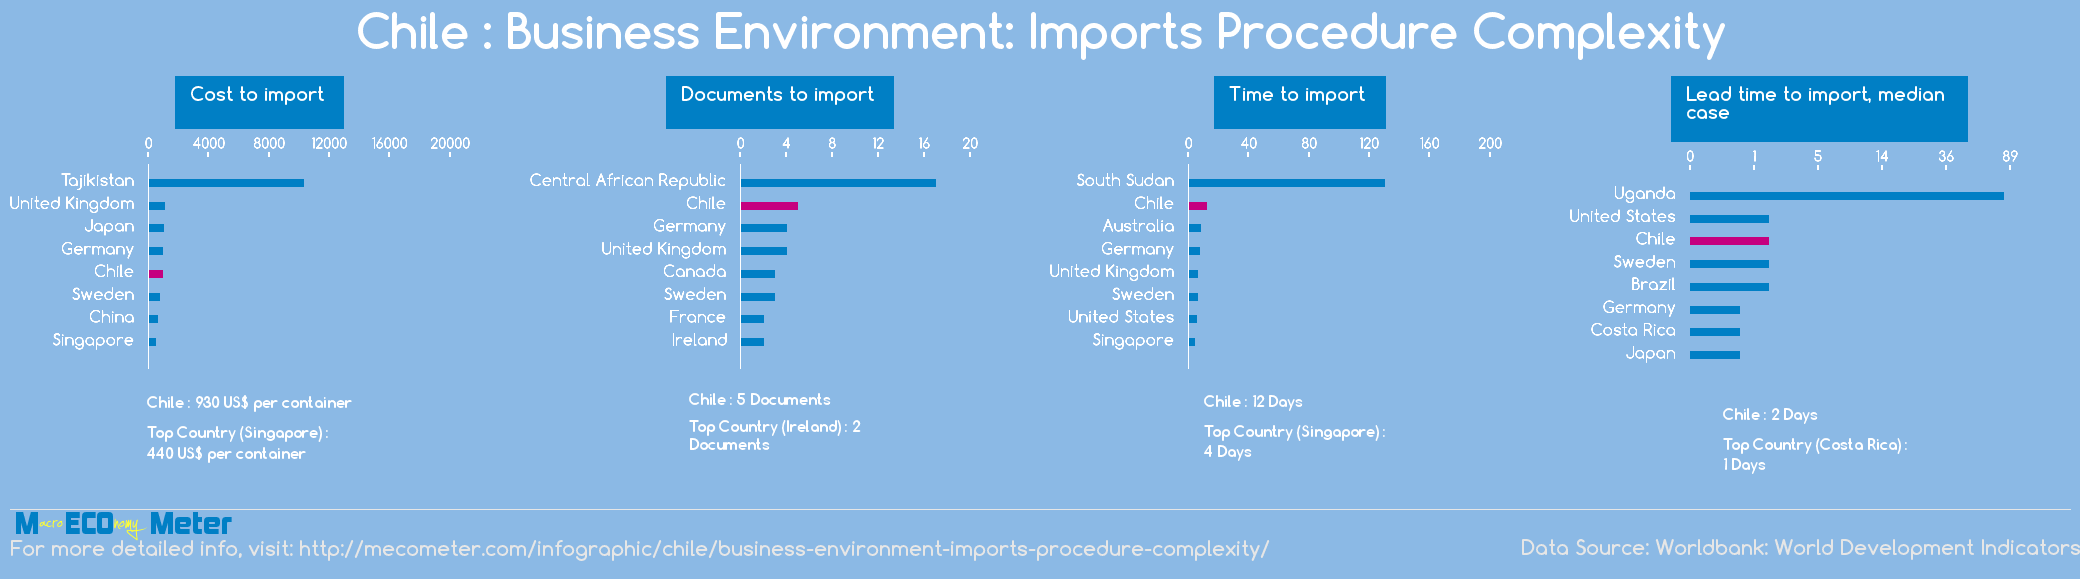 Chile : Business Environment: Imports Procedure Complexity